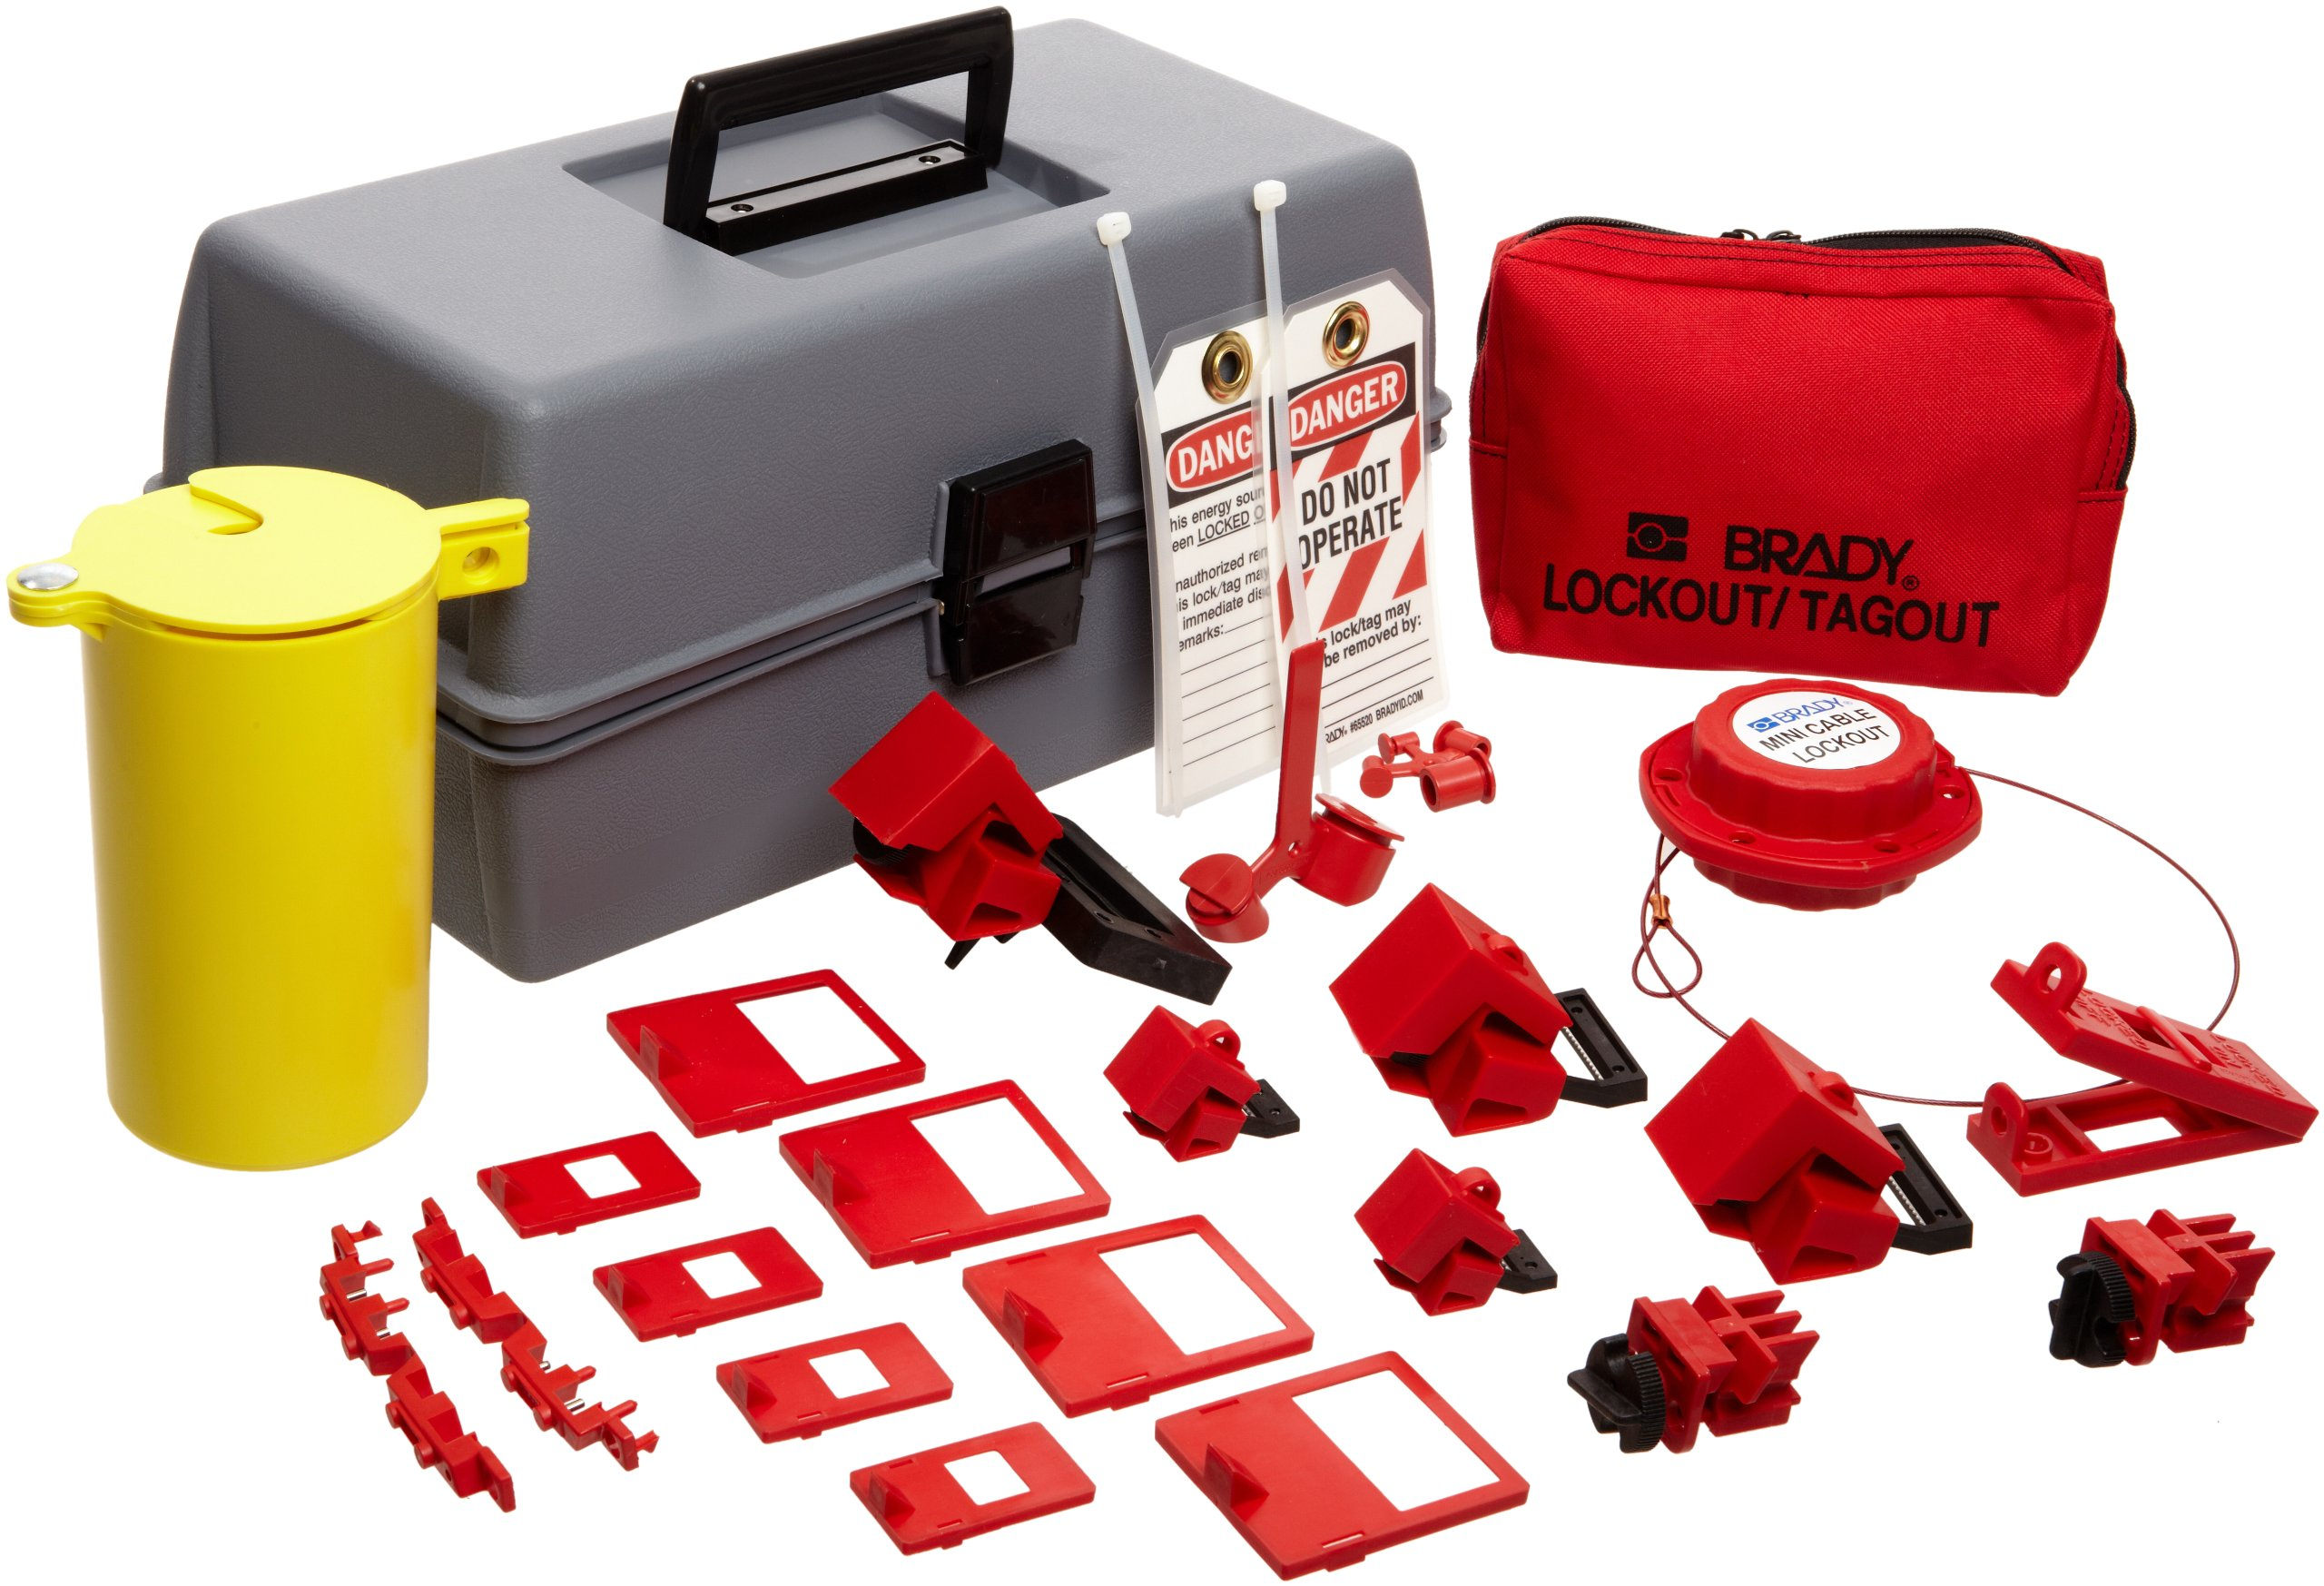 Brady Electrical Lockout Toolbox Kit, Includes Safety Padlocks and Tags